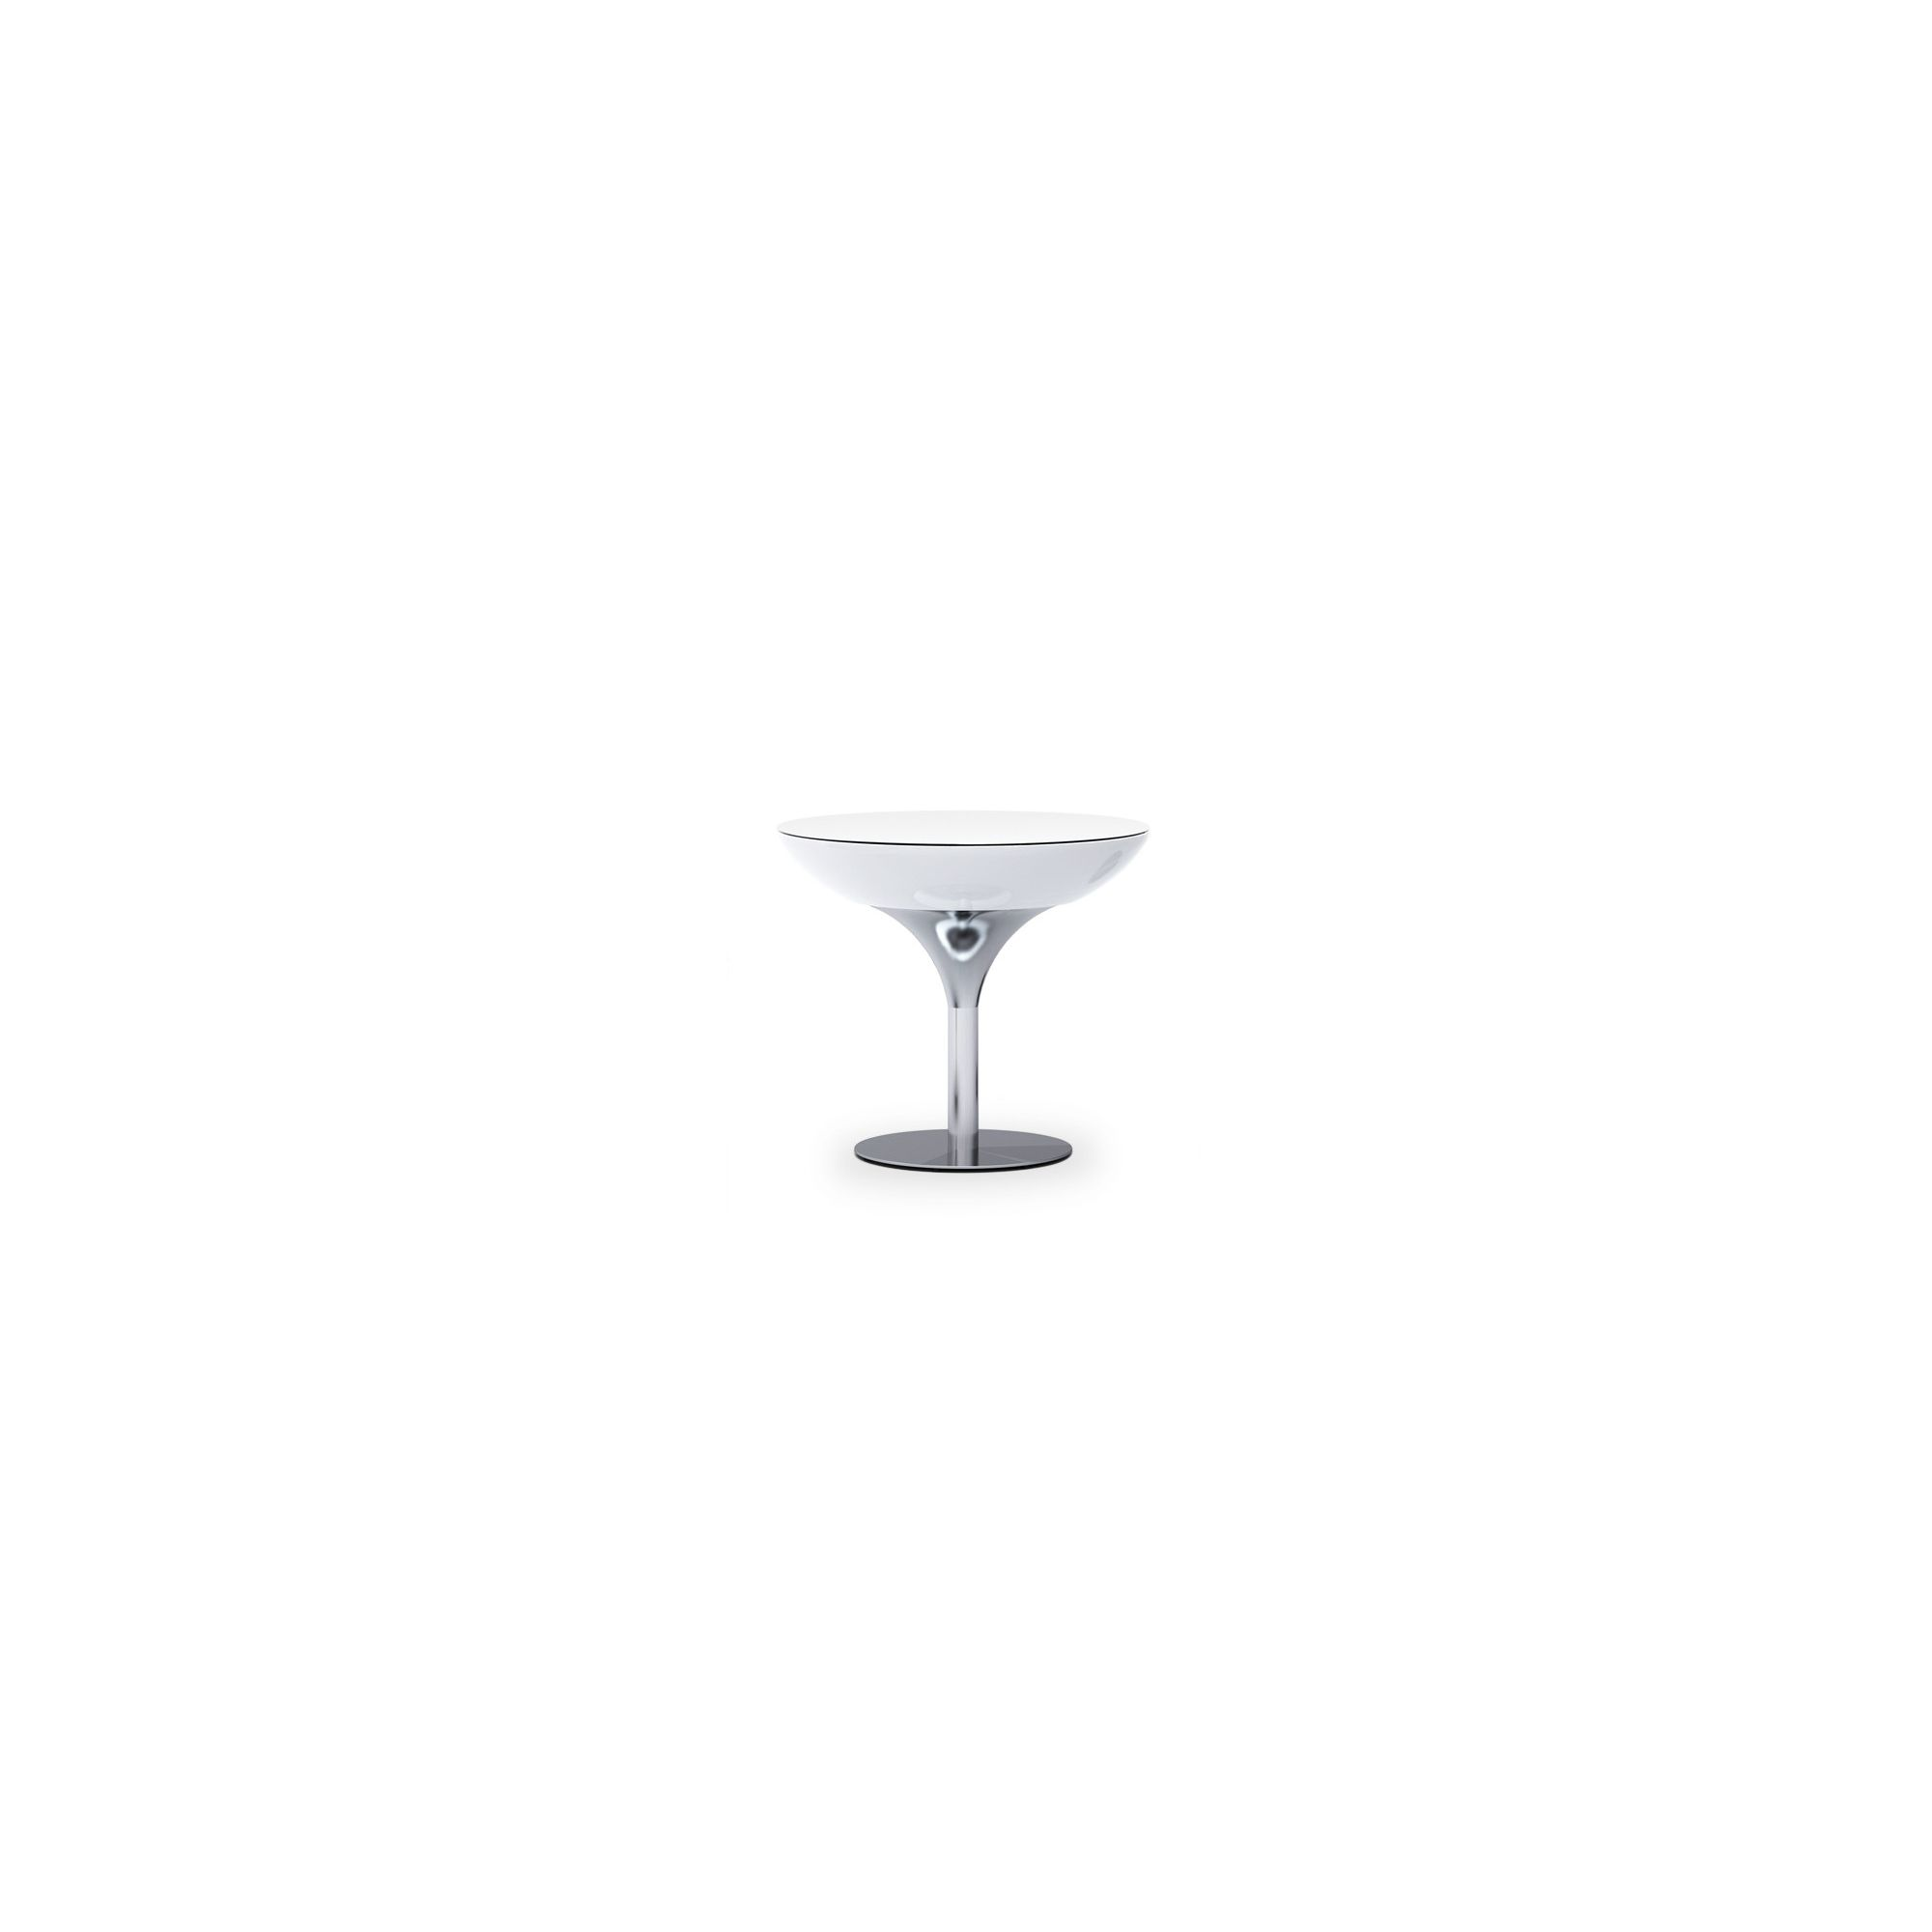 Moree Lounge Indoor Table with Glass Top - 75cm at Tesco Direct